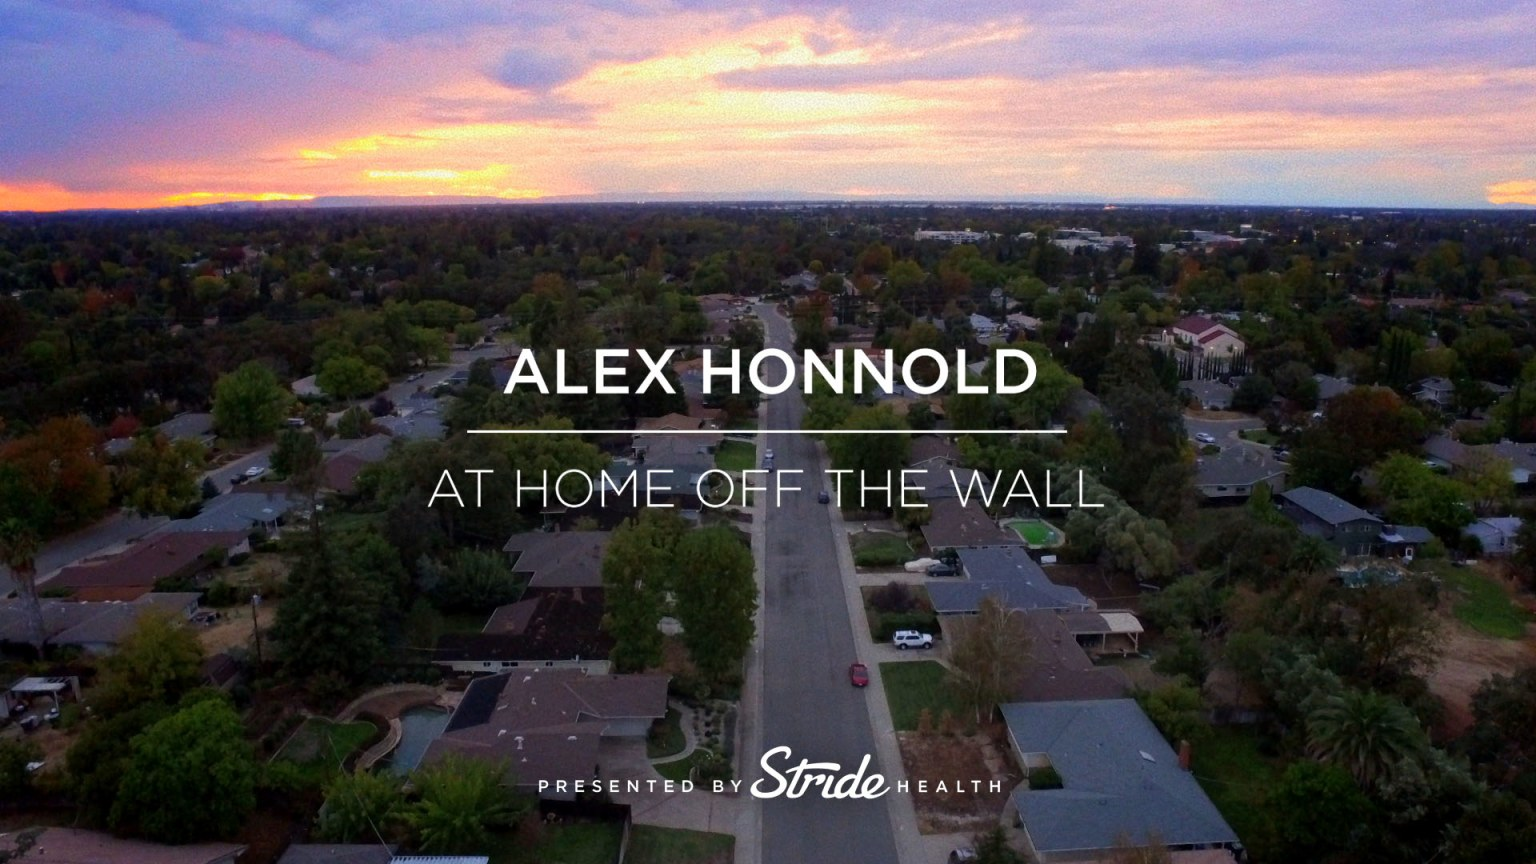 Alex Honnold: At Home Off The Wall